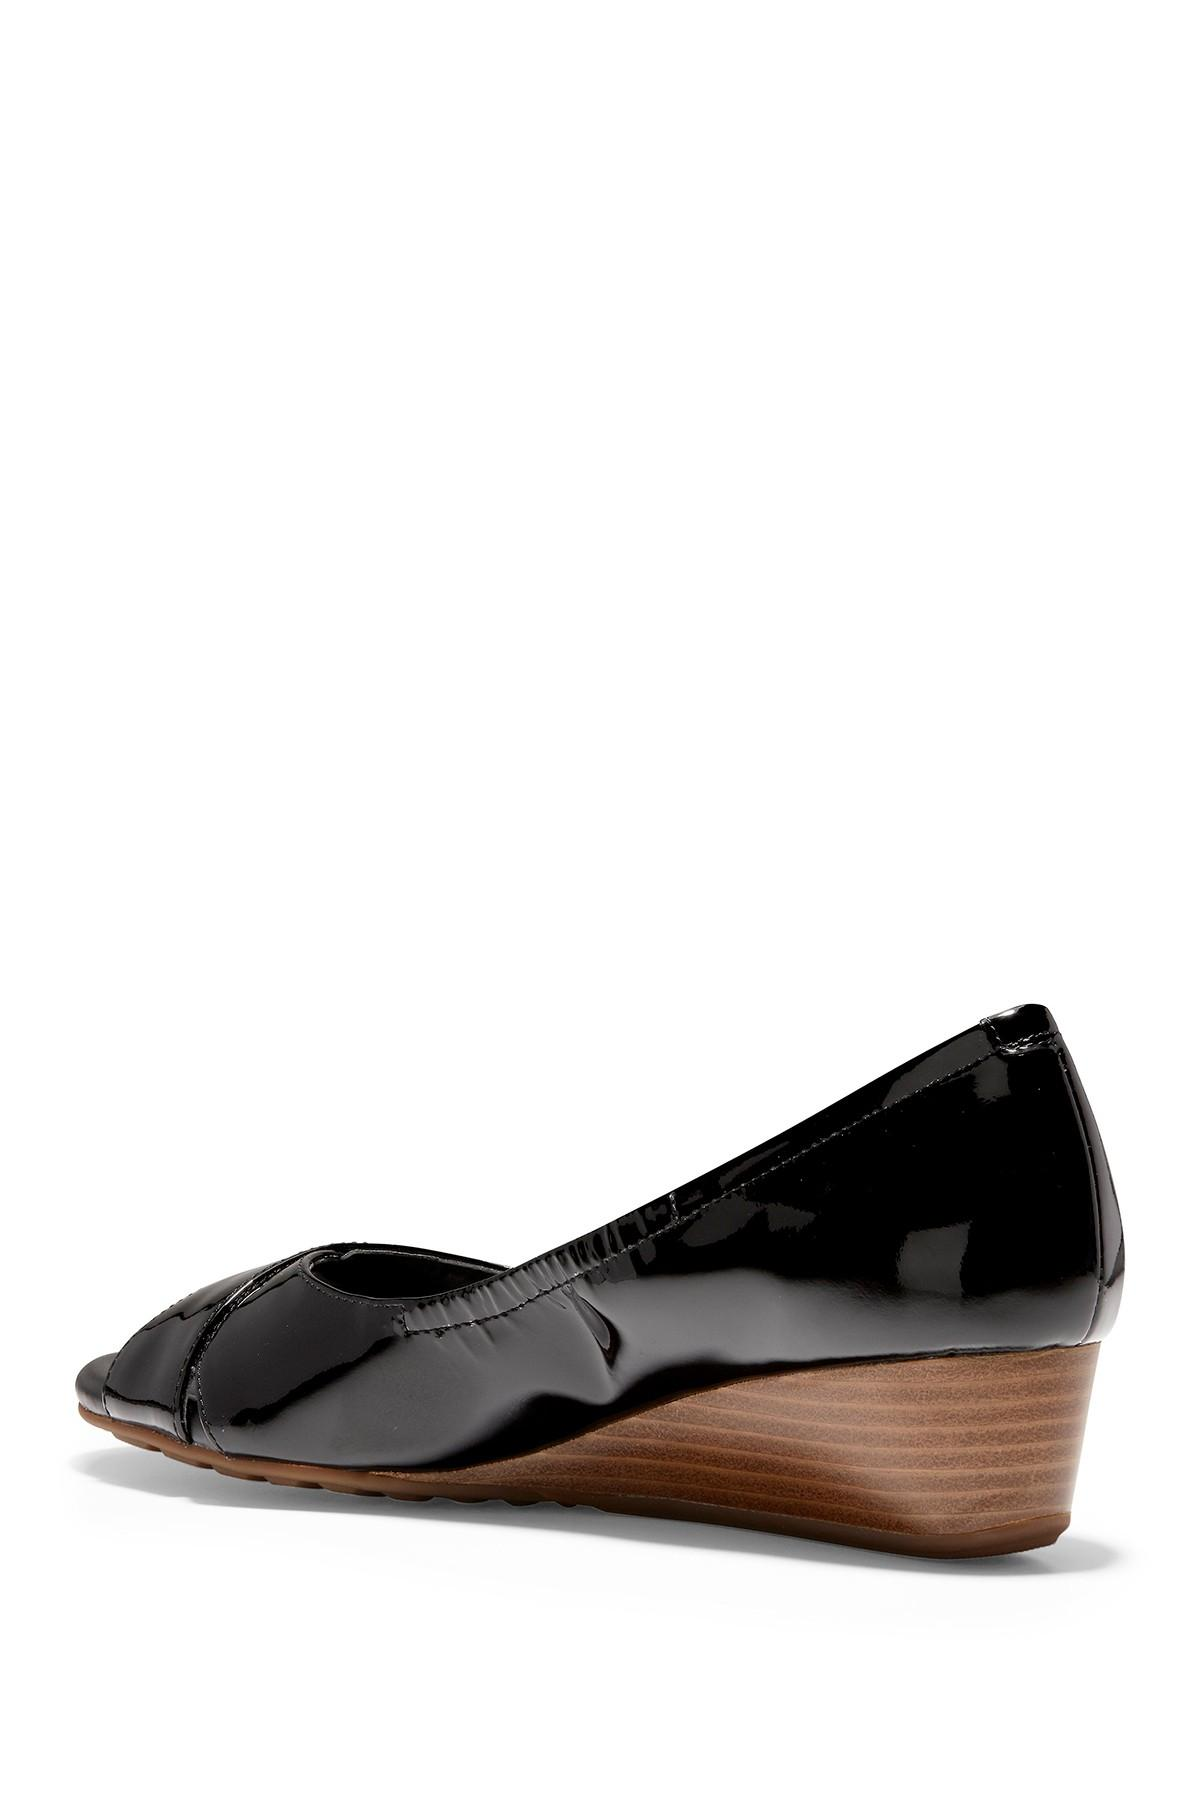 f7c6e16f0f Lyst - Cole Haan Melina Patent Open Toe Wedge in Black